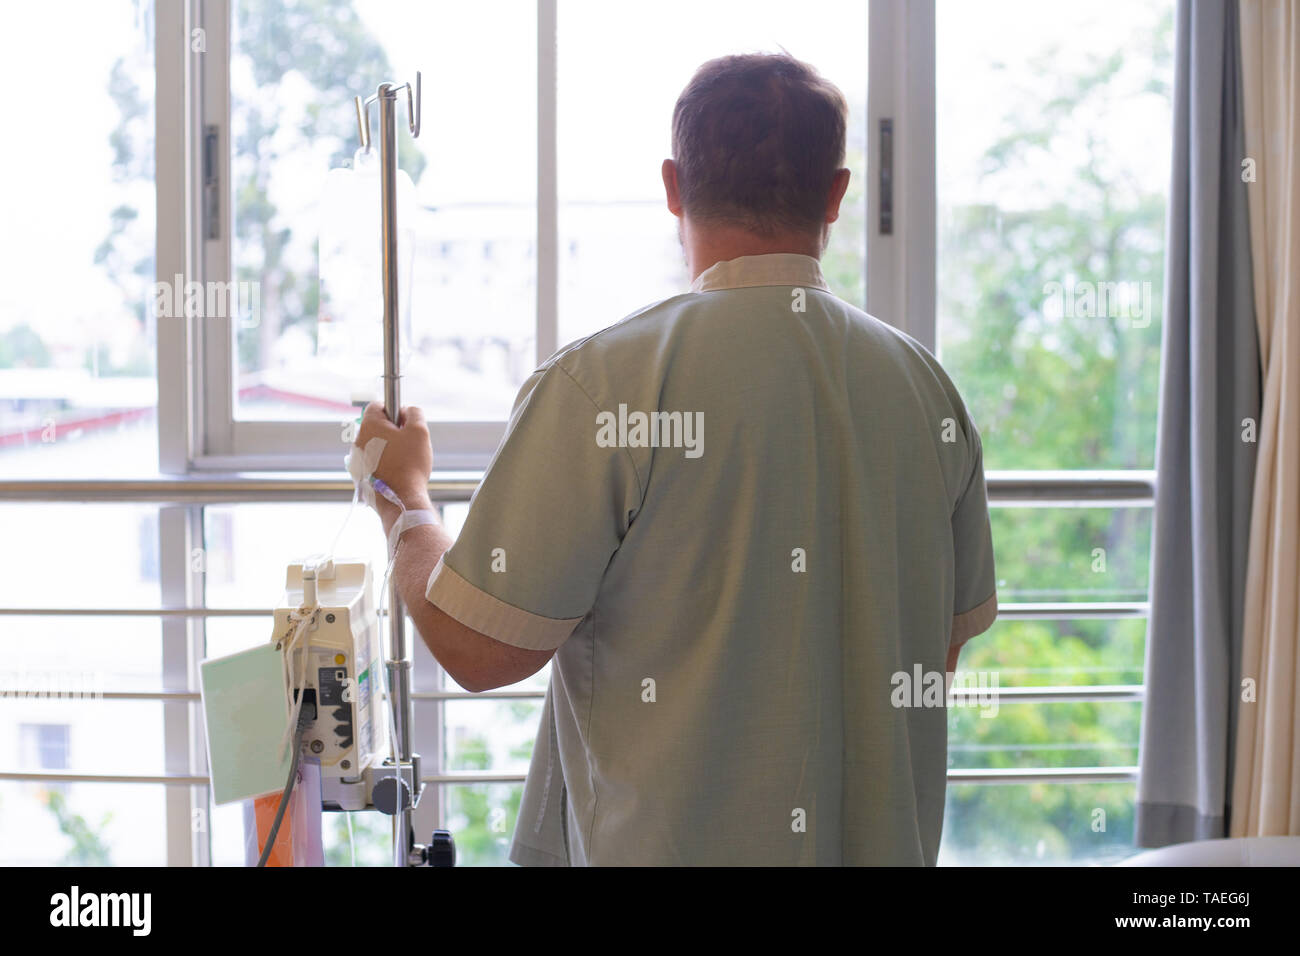 patient with a dropper looks out the window of the hospital room and smiles. back view. Healthcare concept - Stock Image